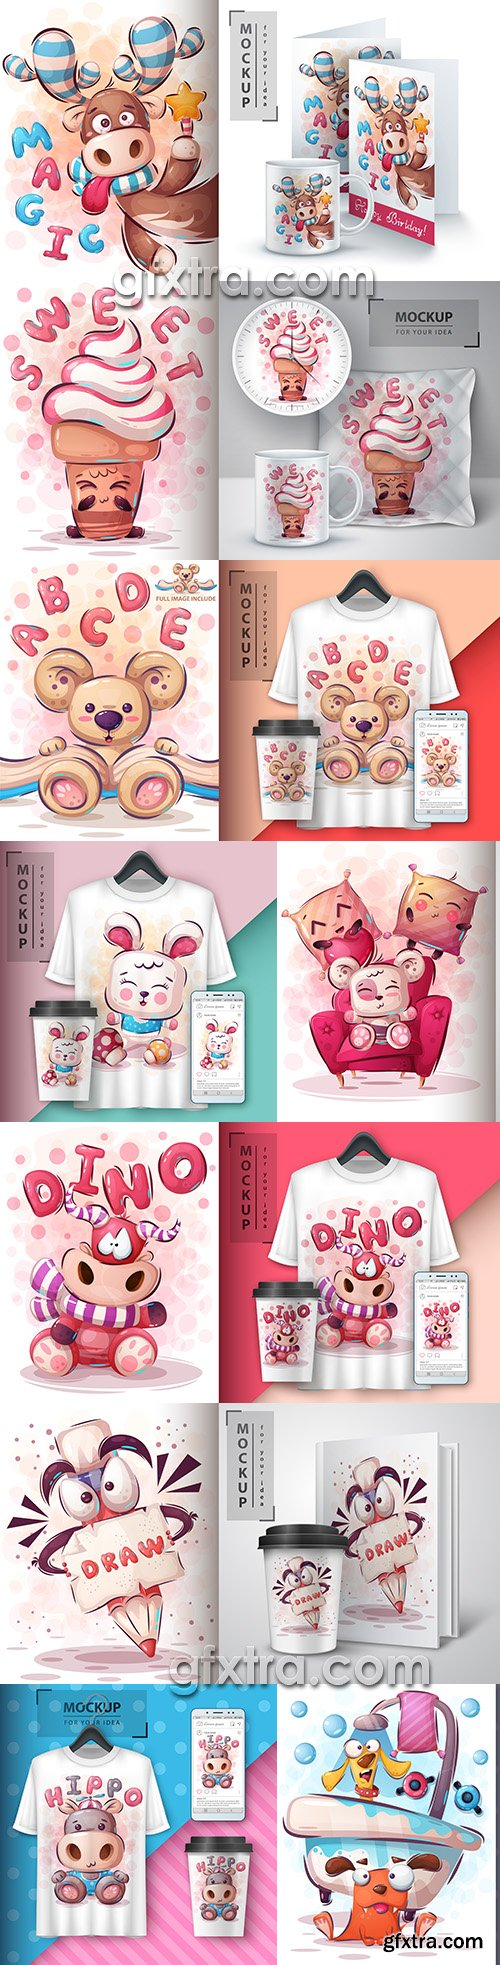 Design 3d t-shirts with mult funny characters 3